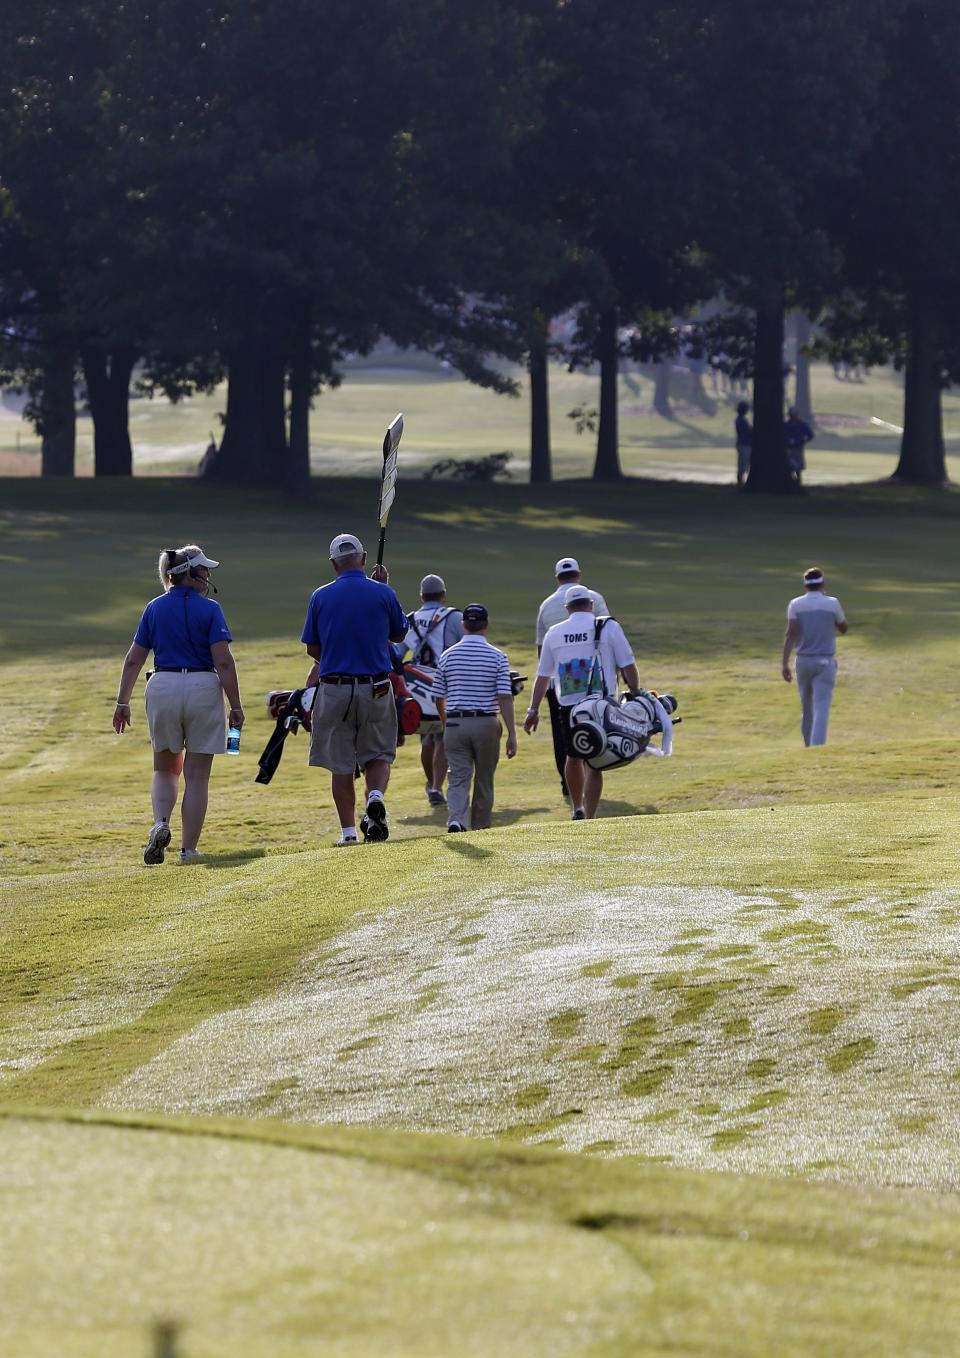 Boo Weekley, Ian Poulter and David Toms leave their footprints in the dew covered greens on 10th hole during the opening round of the St. Jude Classic golf tournament Thursday, June 6, 2013, in Memphis, Tenn. (AP Photo/Rogelio V. Solis)